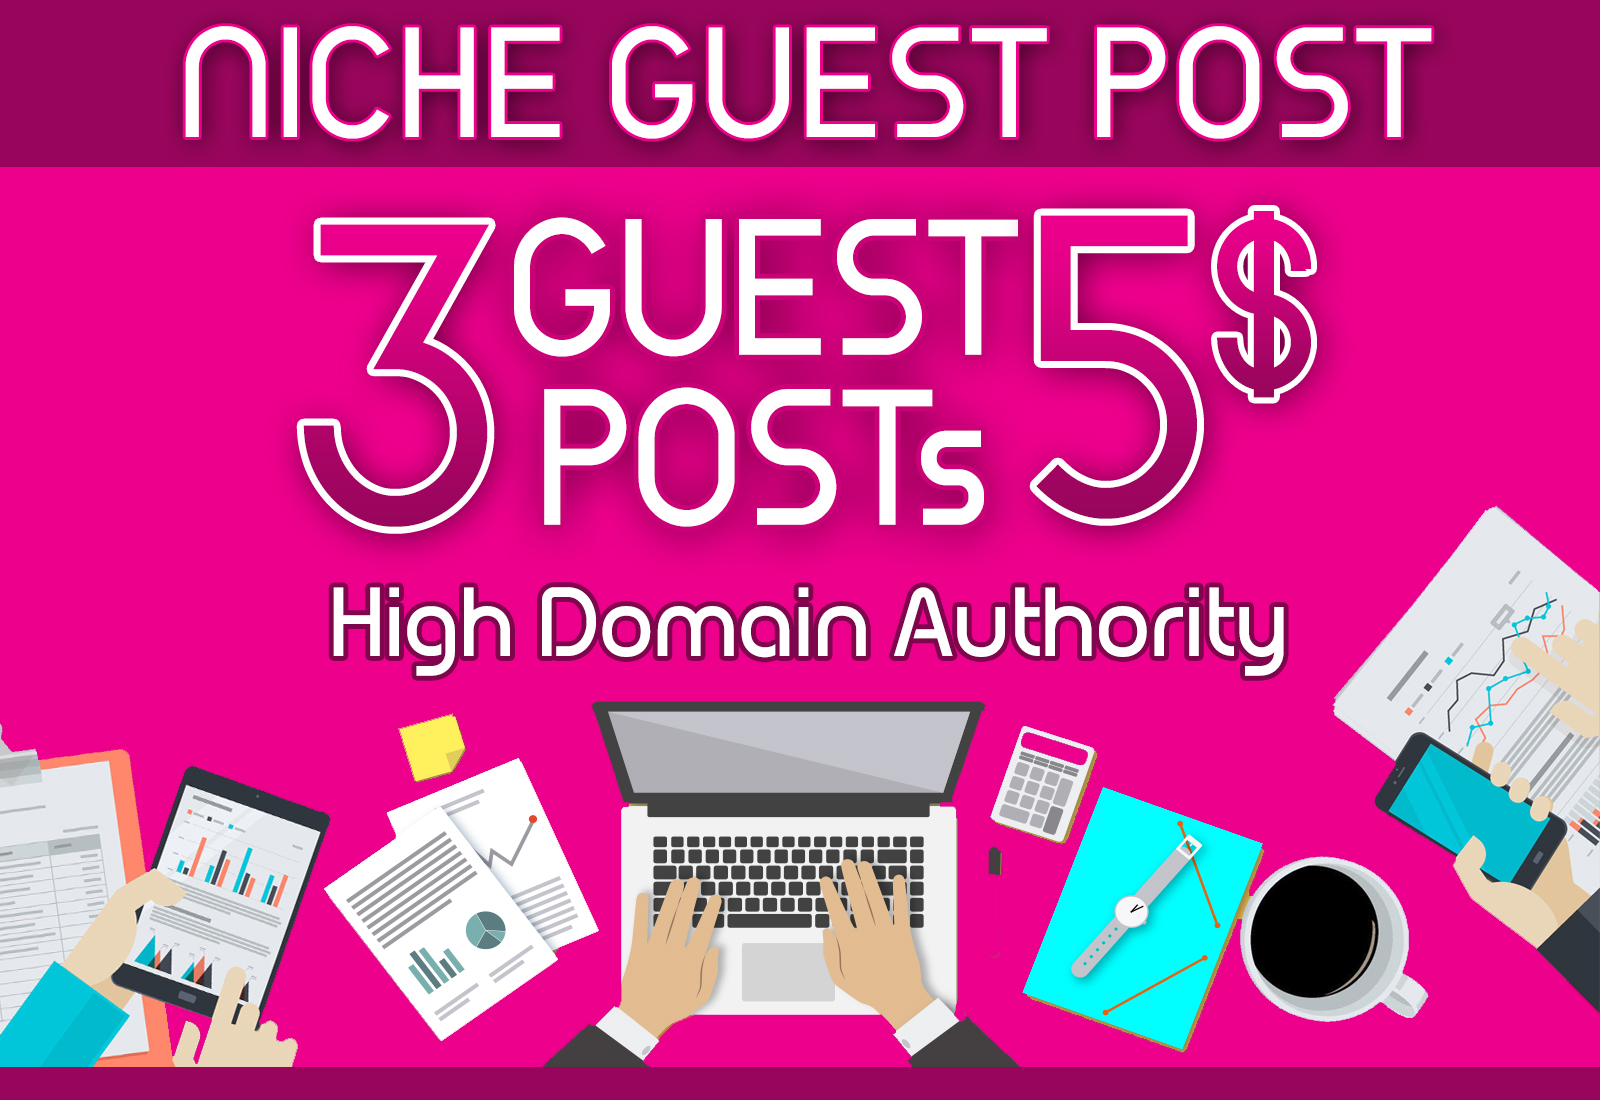 I will write and publish 3 niche guest post on high authority websites